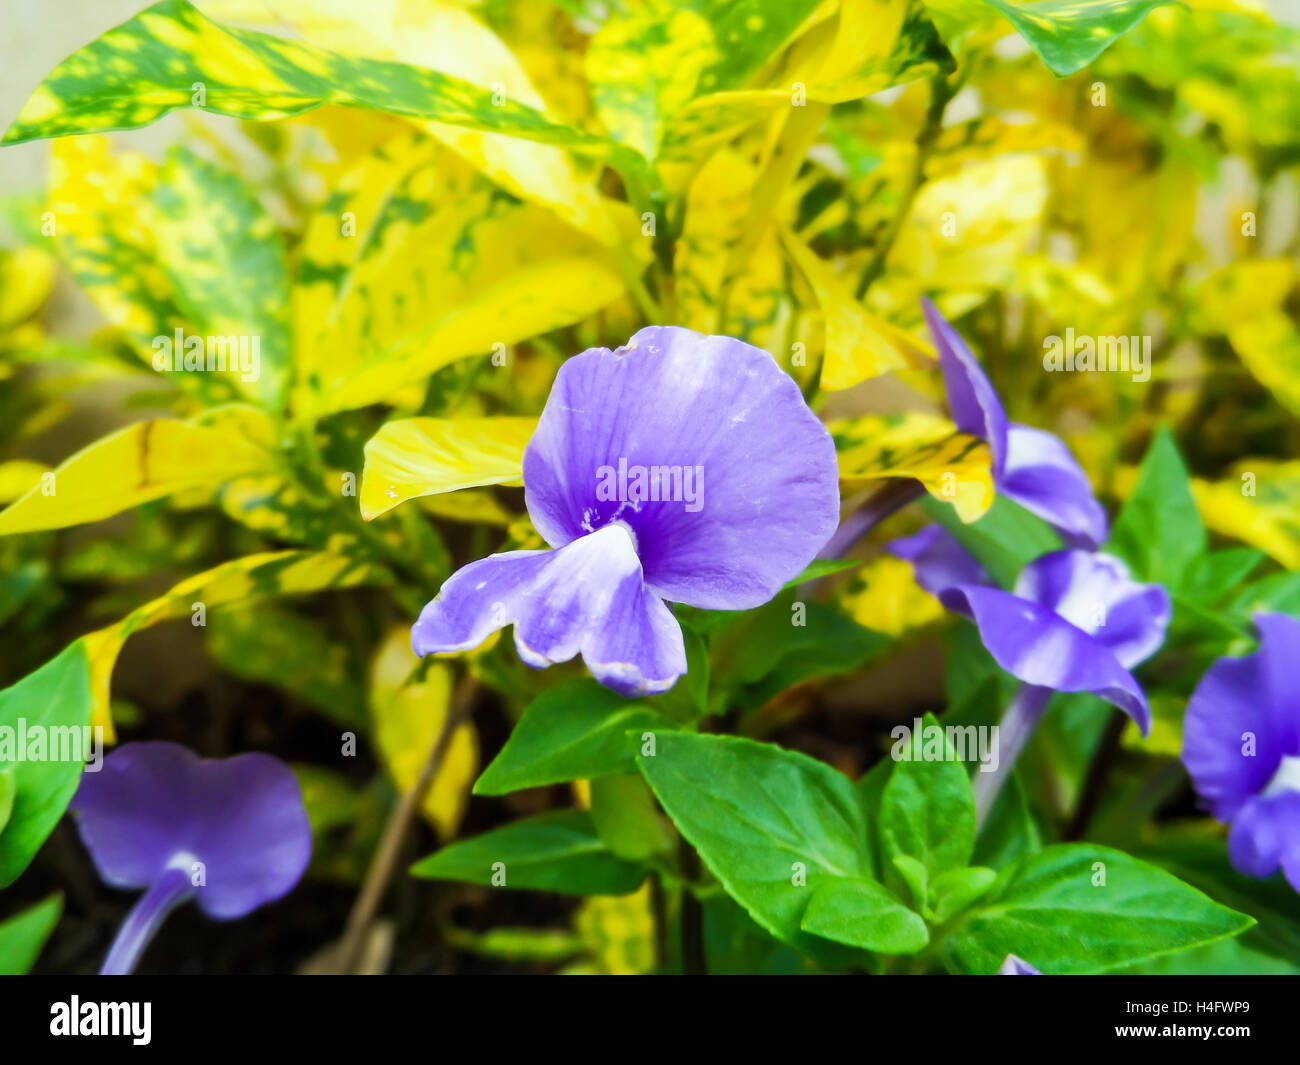 Otacanthus caeruleus the name of purple white flower thailand call otacanthus caeruleus the name of purple white flower thailand call blue hawai mightylinksfo